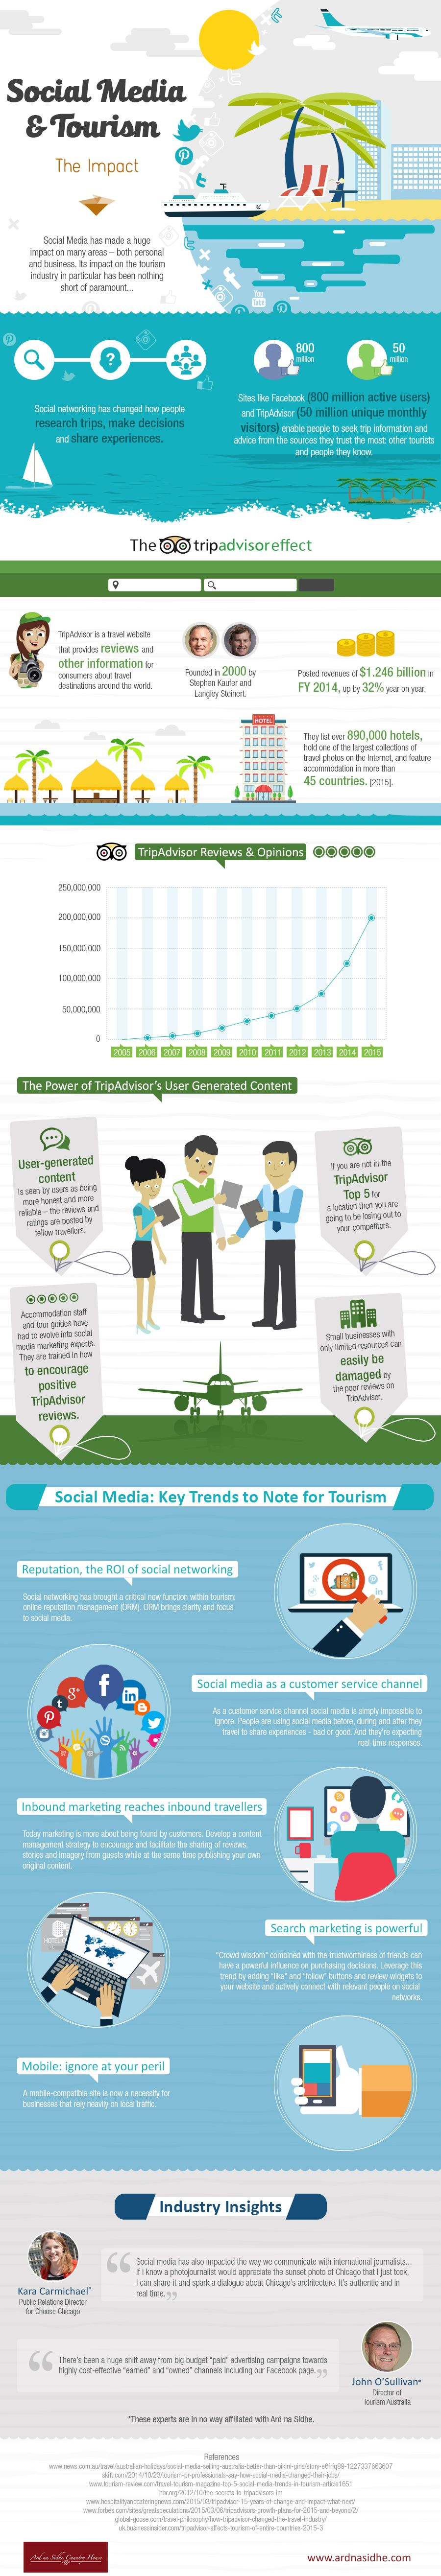 Social Media and Tourism #Infographic